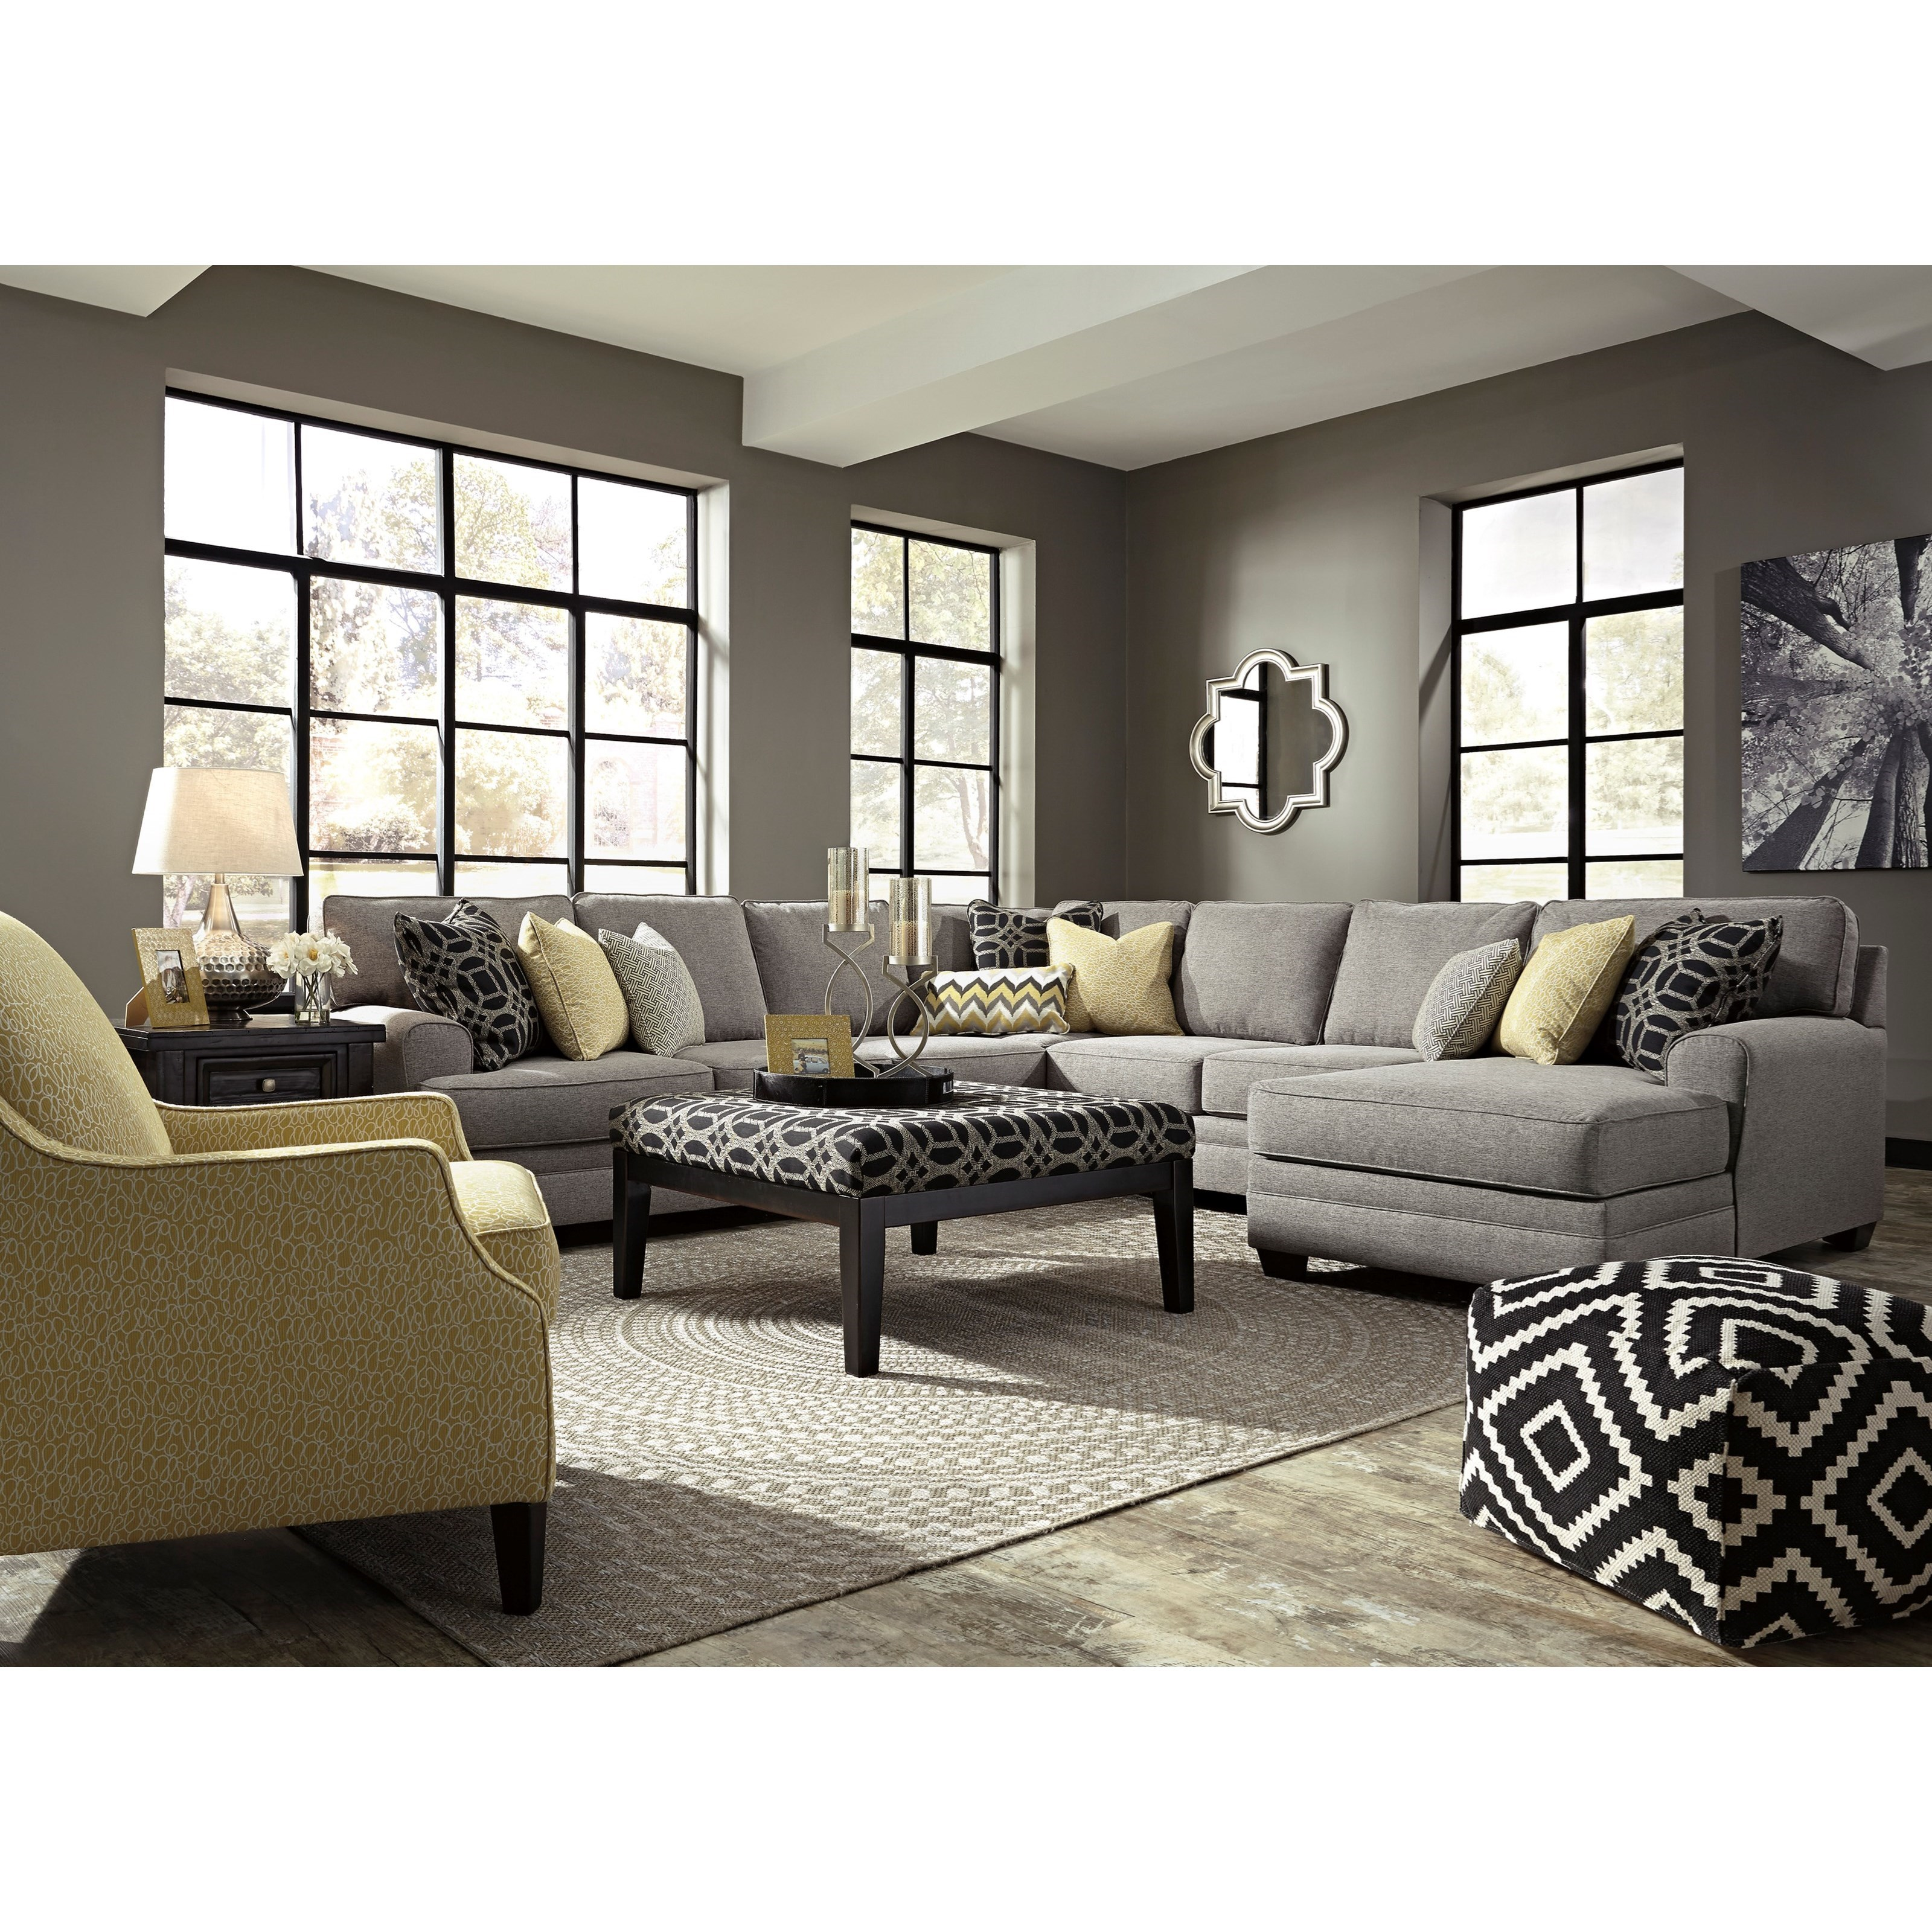 Benchcraft Cresson Stationary Living Room Group - Item Number: 54907 Living Room Group 8